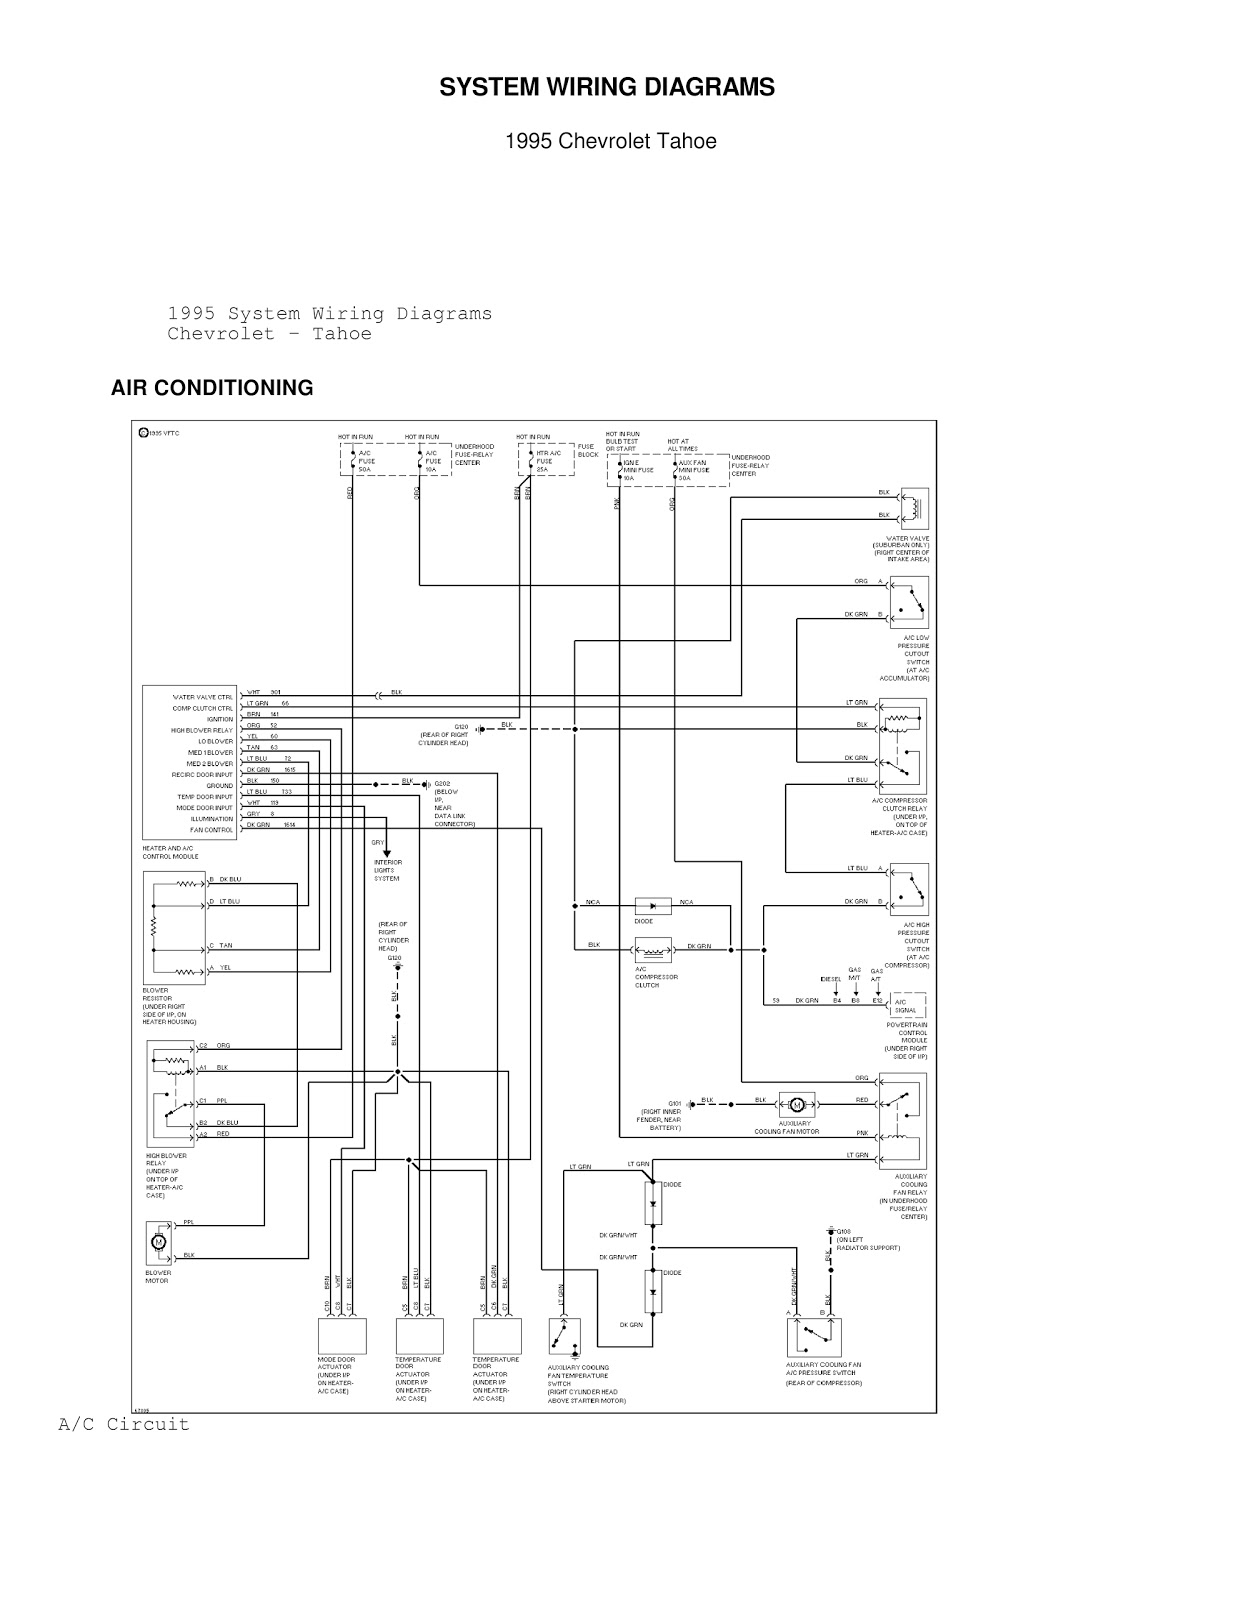 1995 chevrolet tahoe system wiring diagrams air conditioning circuits schematic wiring. Black Bedroom Furniture Sets. Home Design Ideas